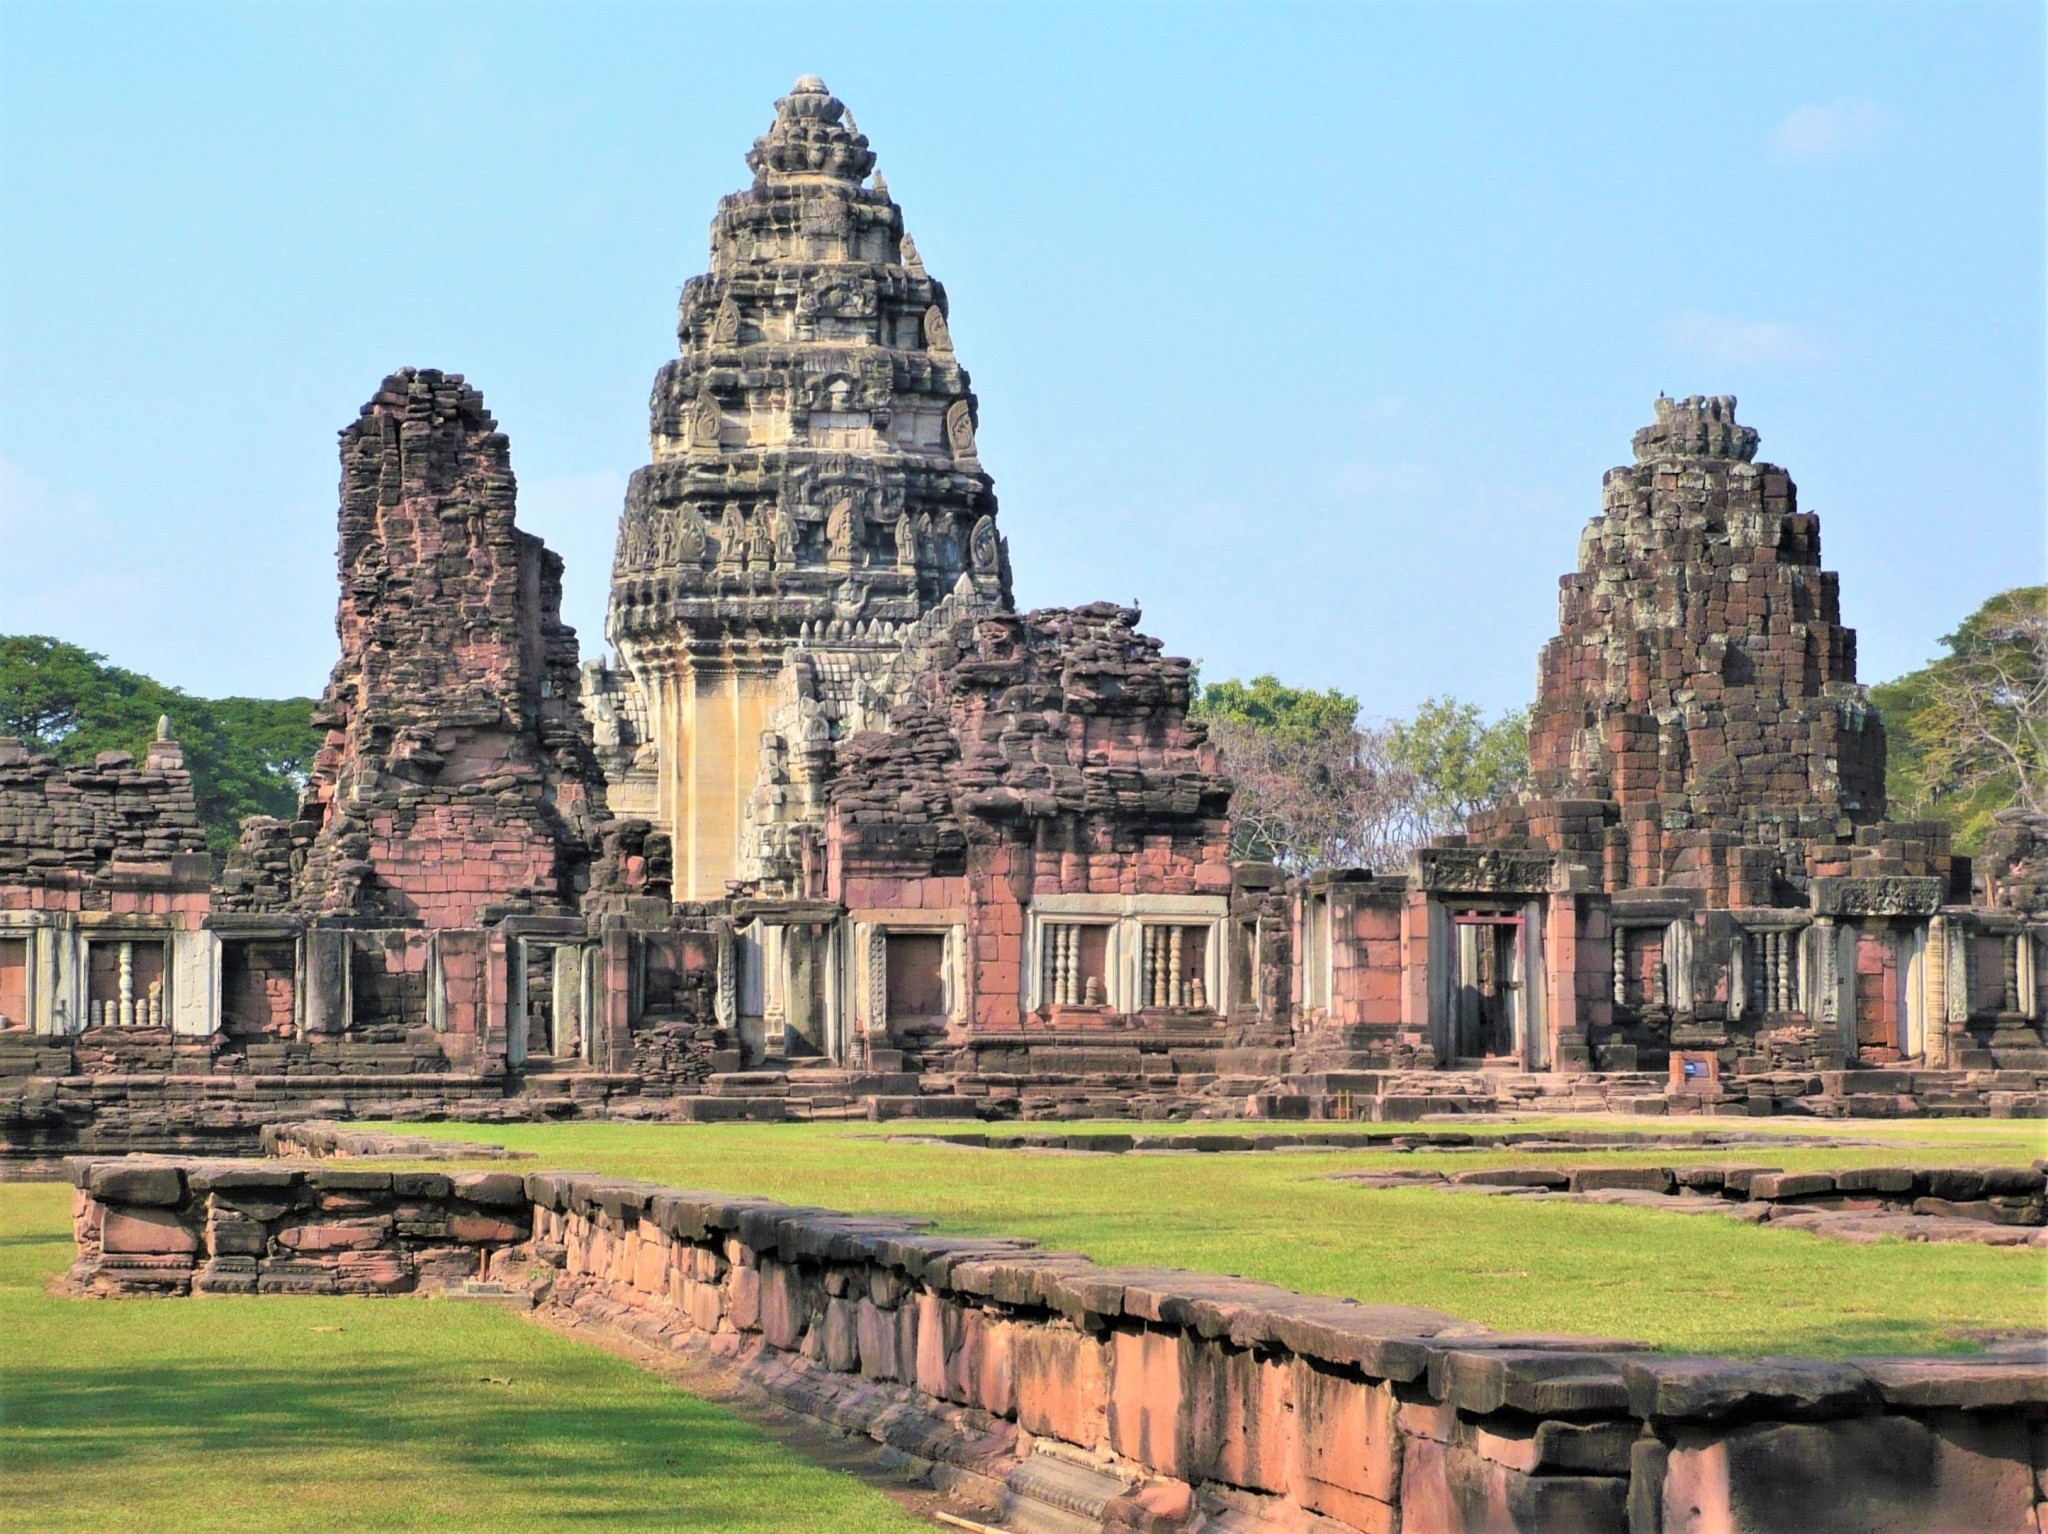 The ruins of an ancient temple and its grass-covered grounds at Phimai in Thailand.